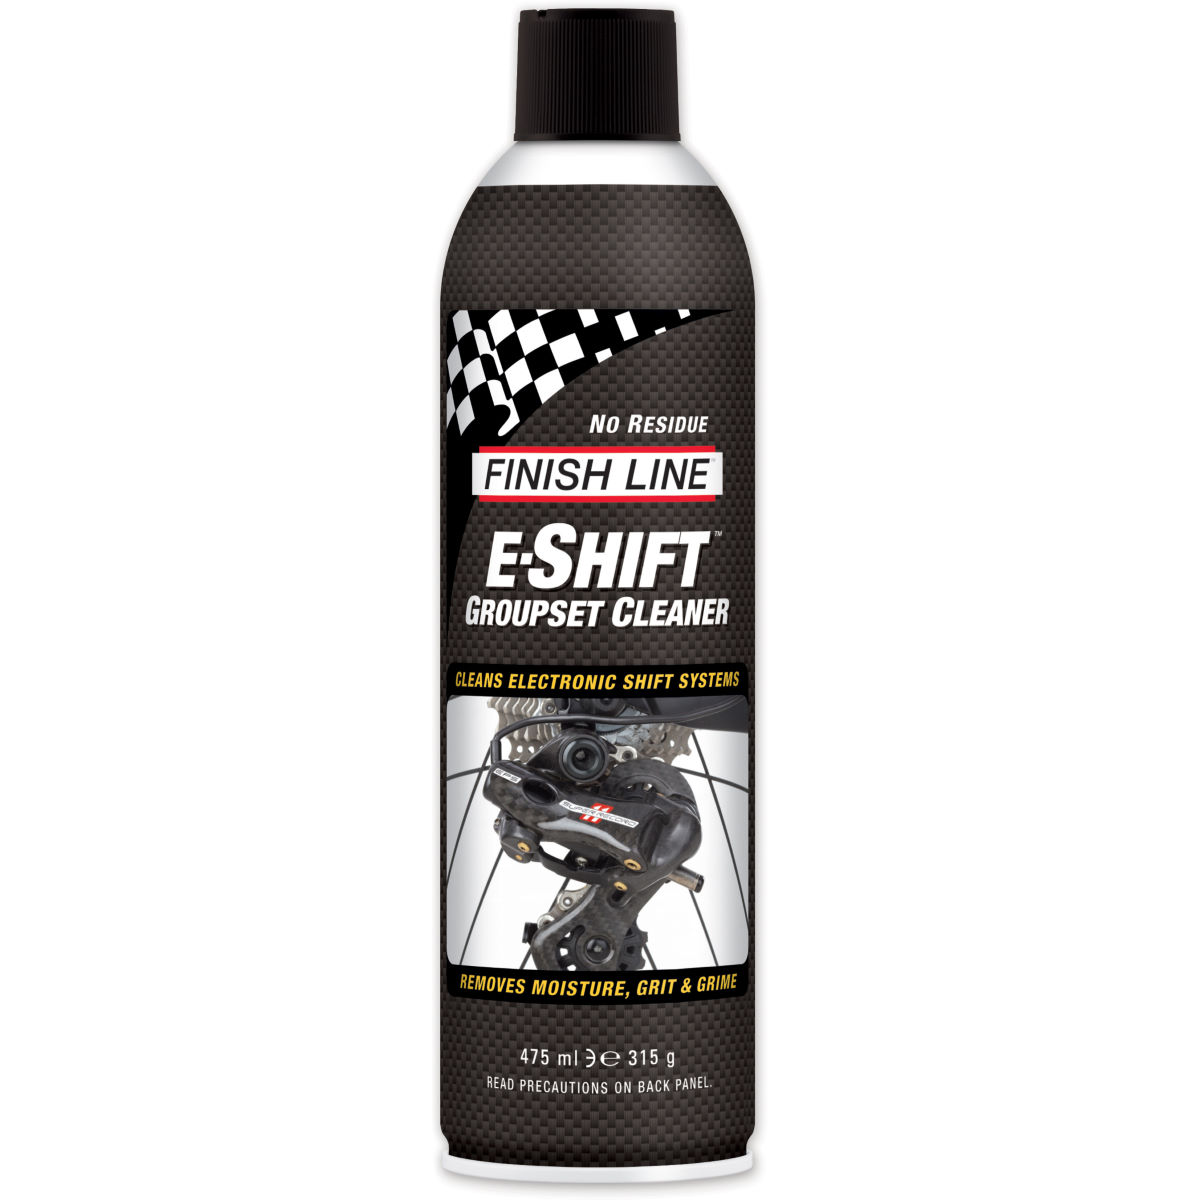 Finish Line Finish Line E-Shift Groupset Cleaner   Cleaning Products